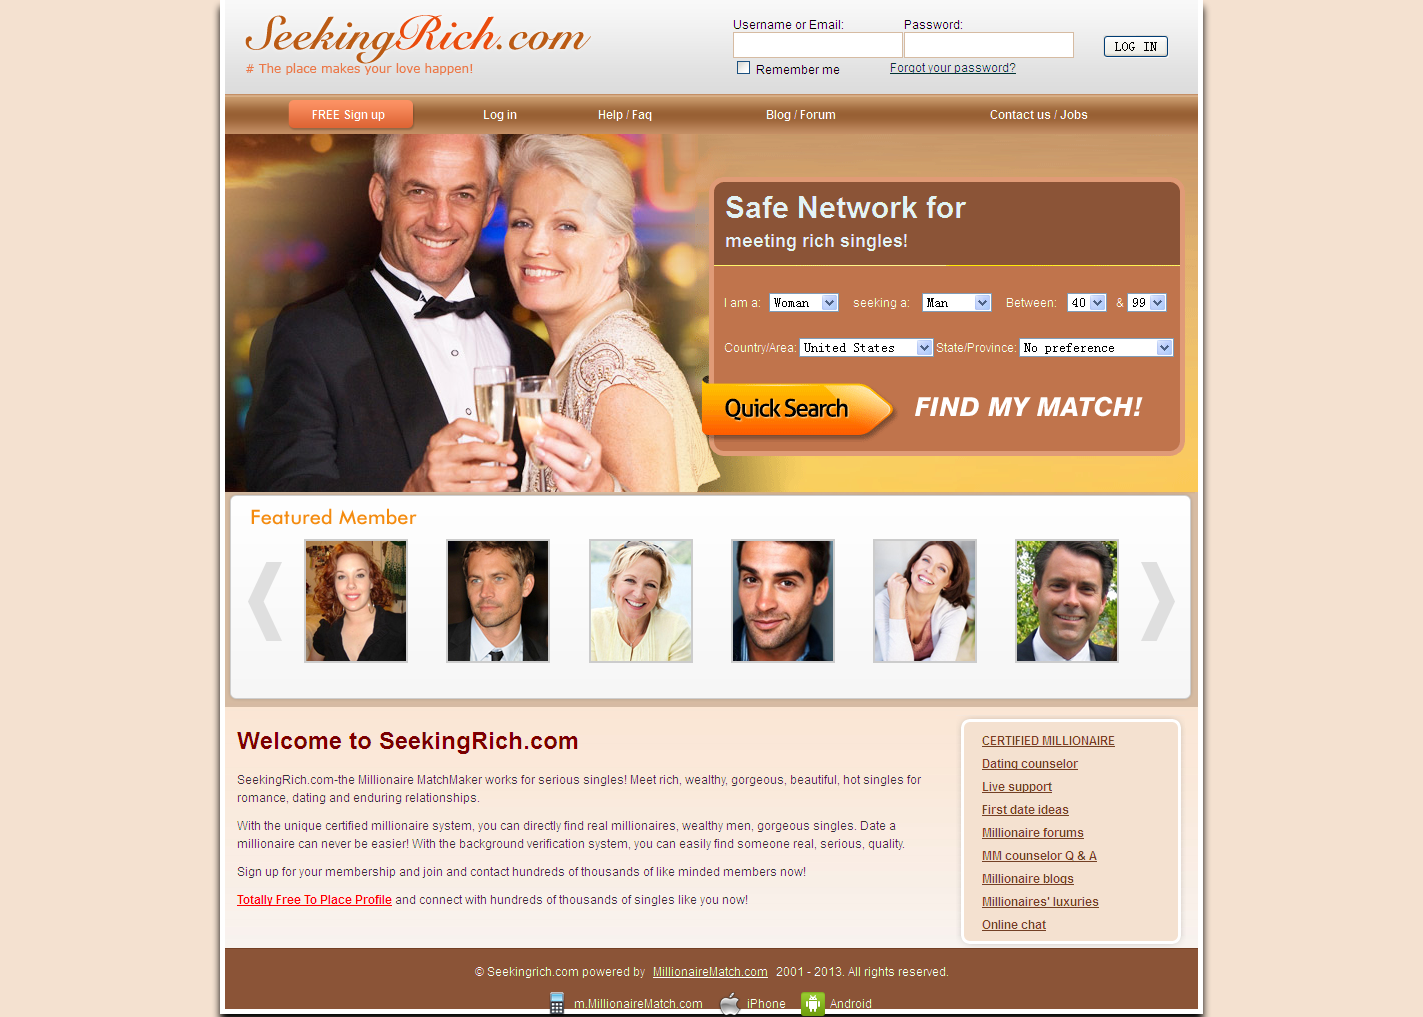 northallerton singles dating site Yorkshire singles - search for singles in your local area ###location#### dating sites featuring personal ads for single women and men.